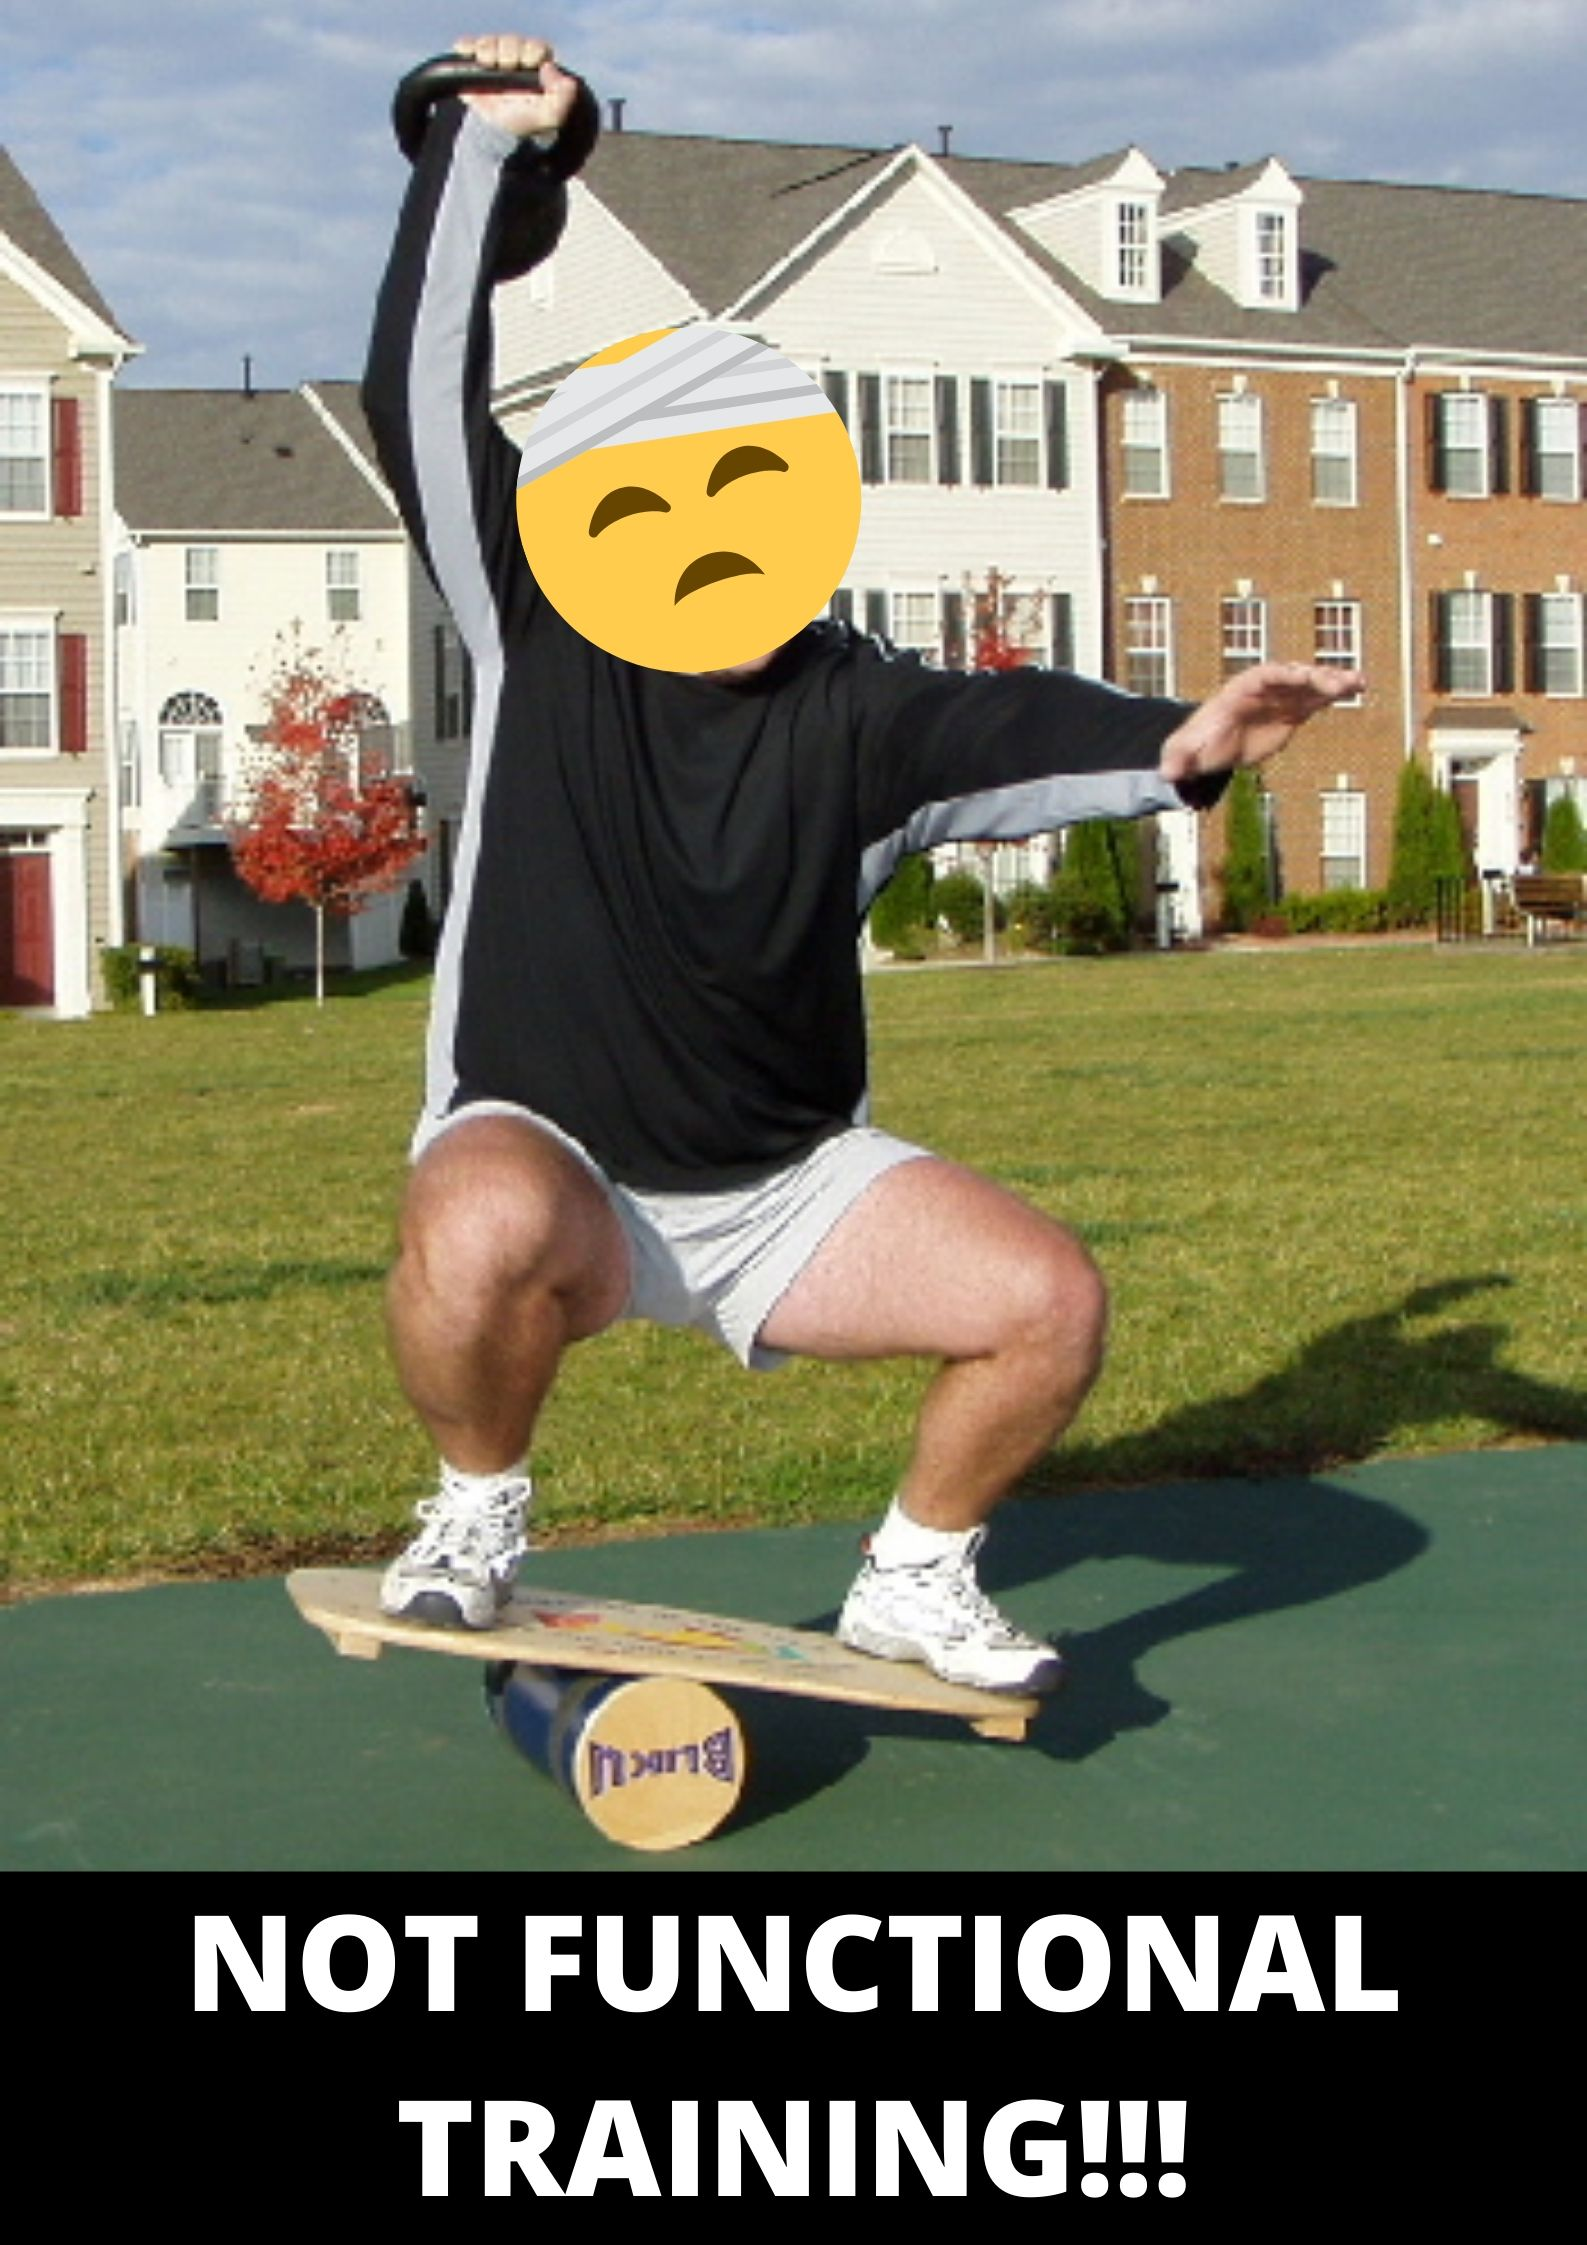 NOT FUNCTIONAL TRAINING